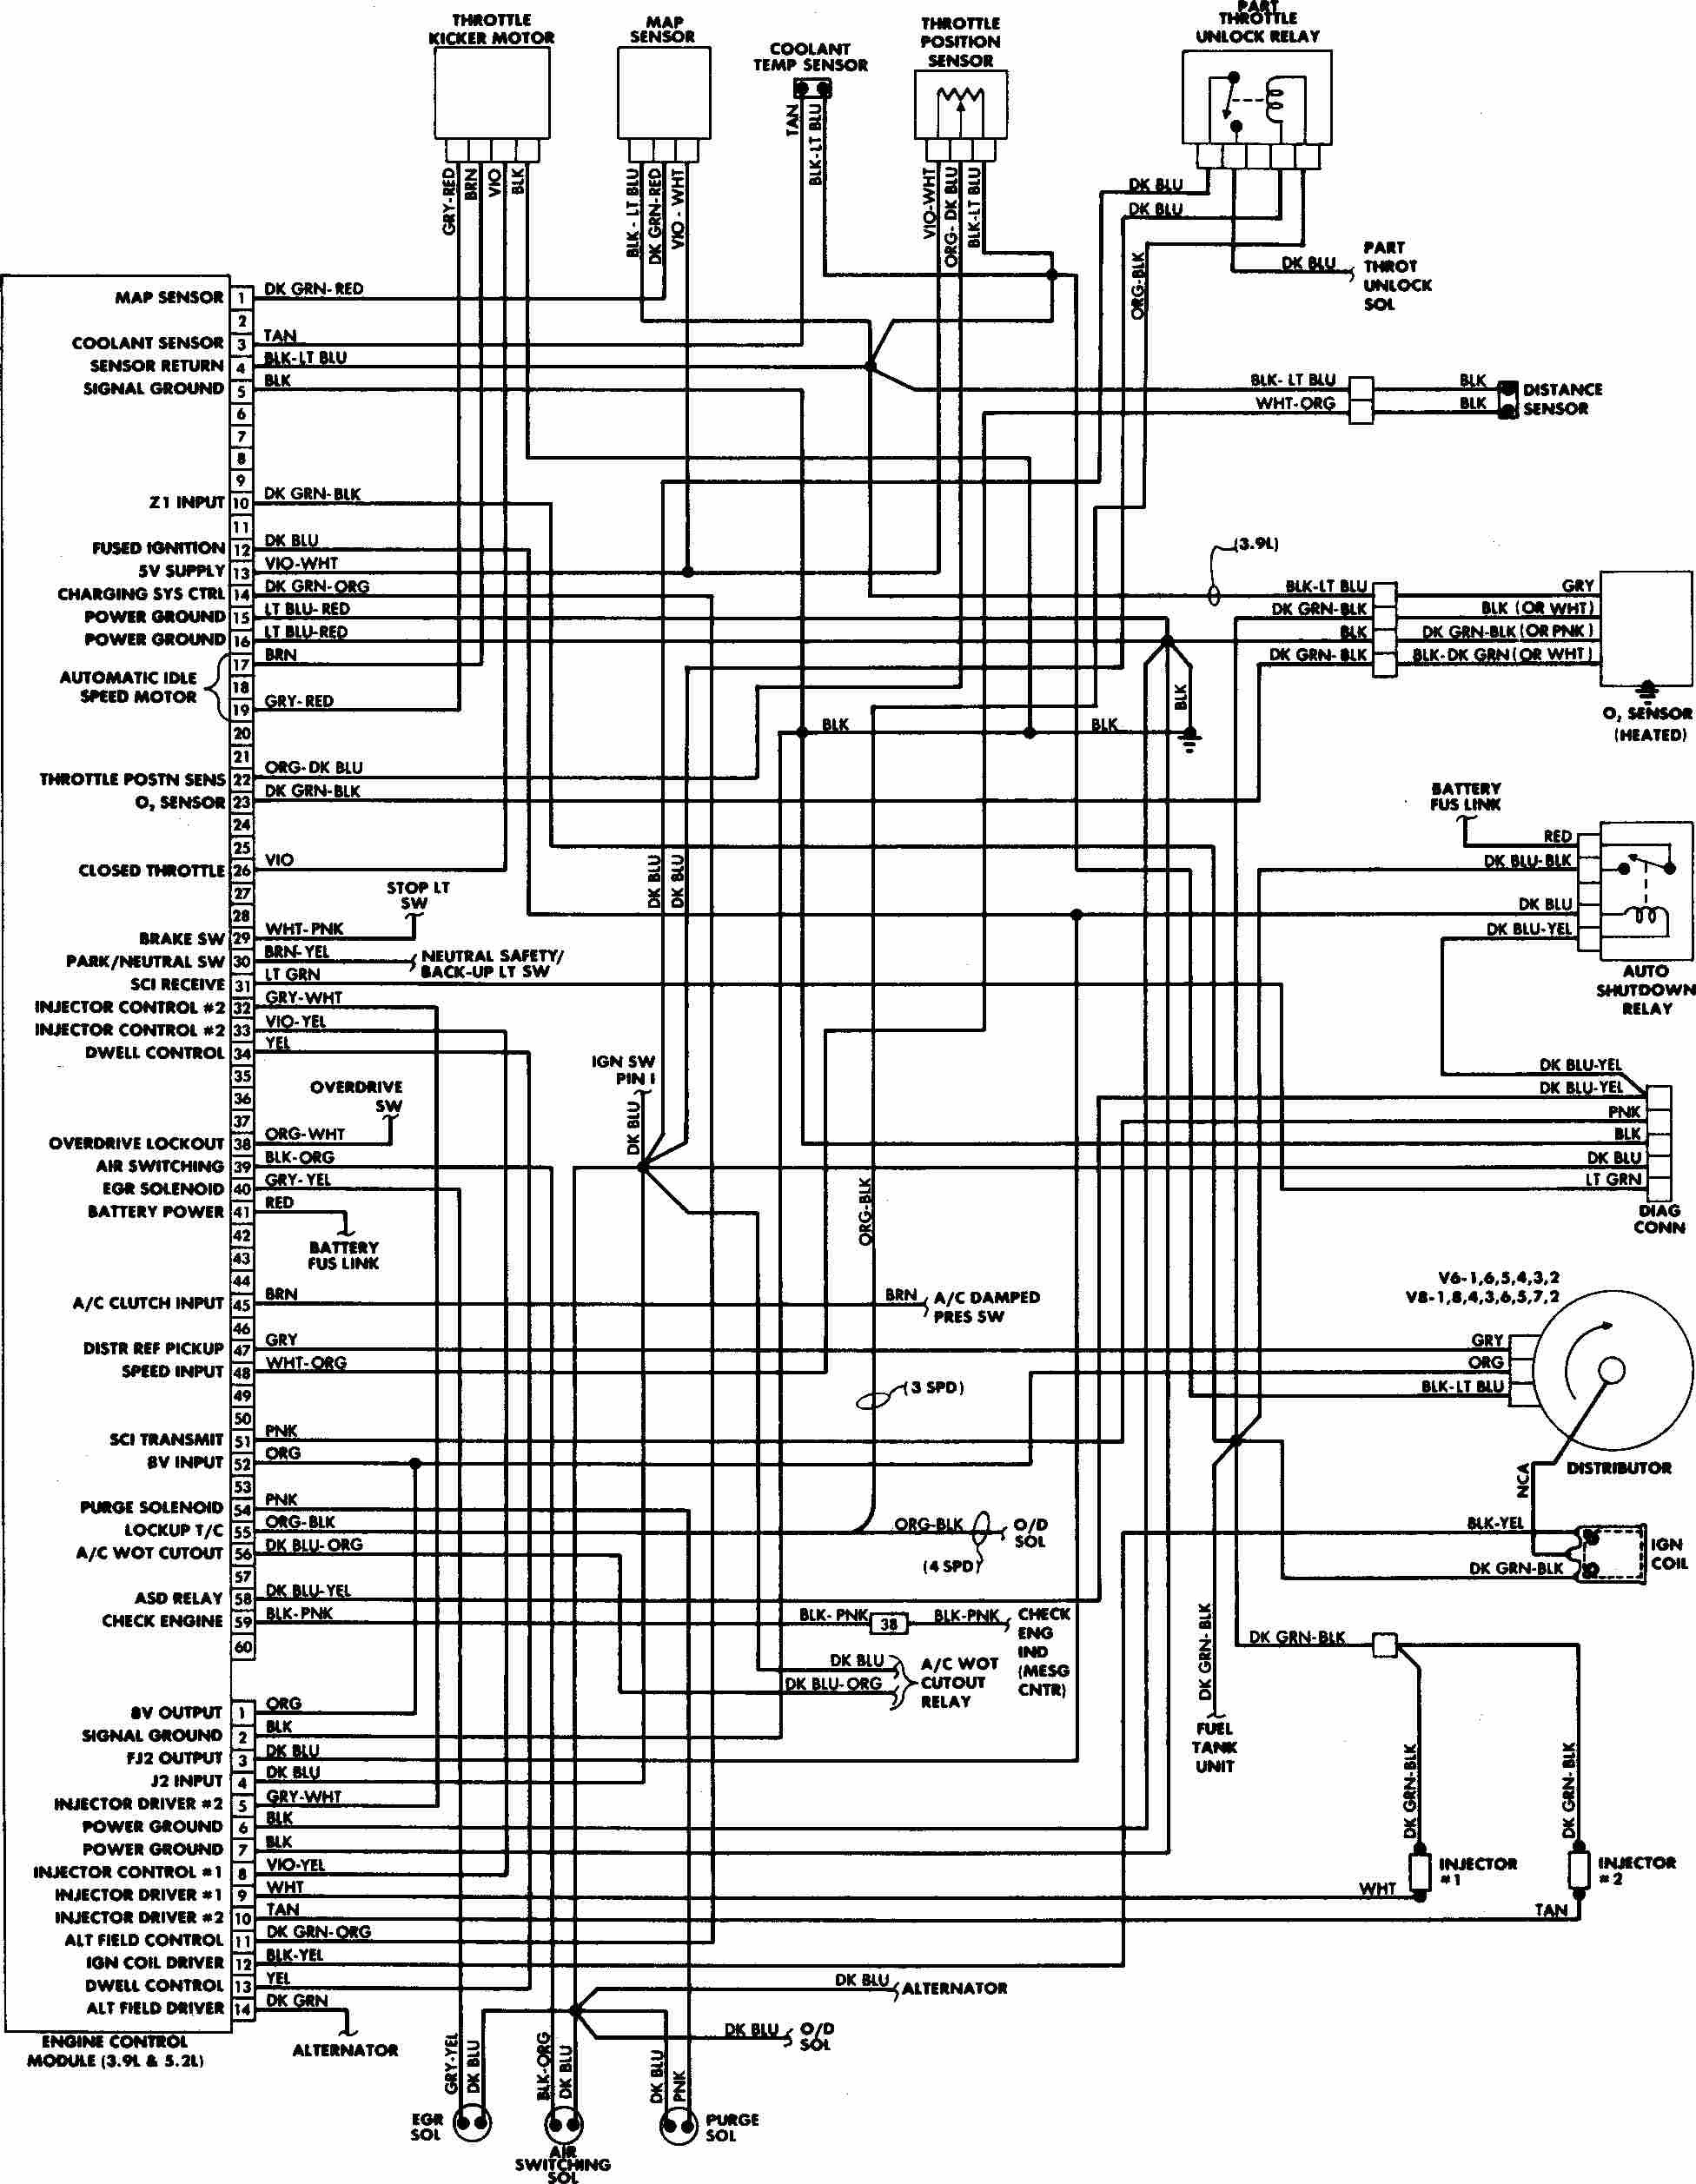 Fuse Box Diagram Dodge Caravan